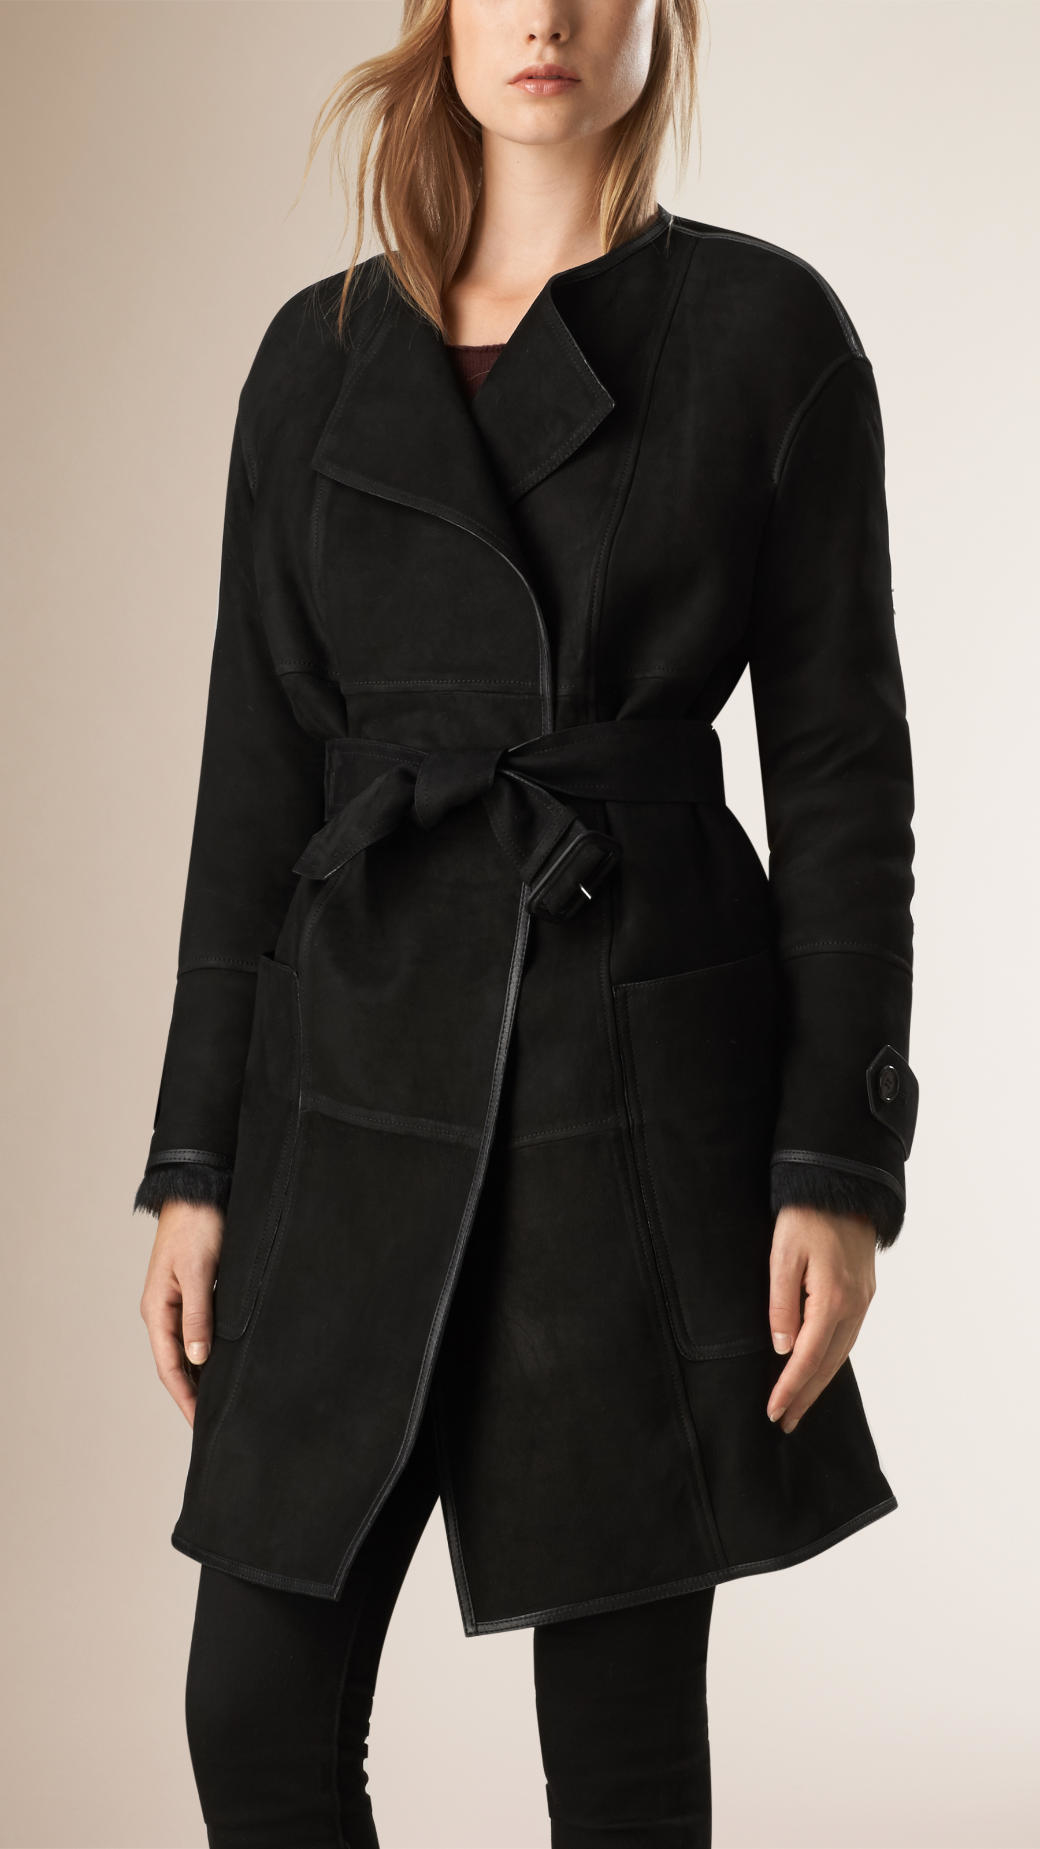 Burberry Shearling Wrap Coat in Black | Lyst